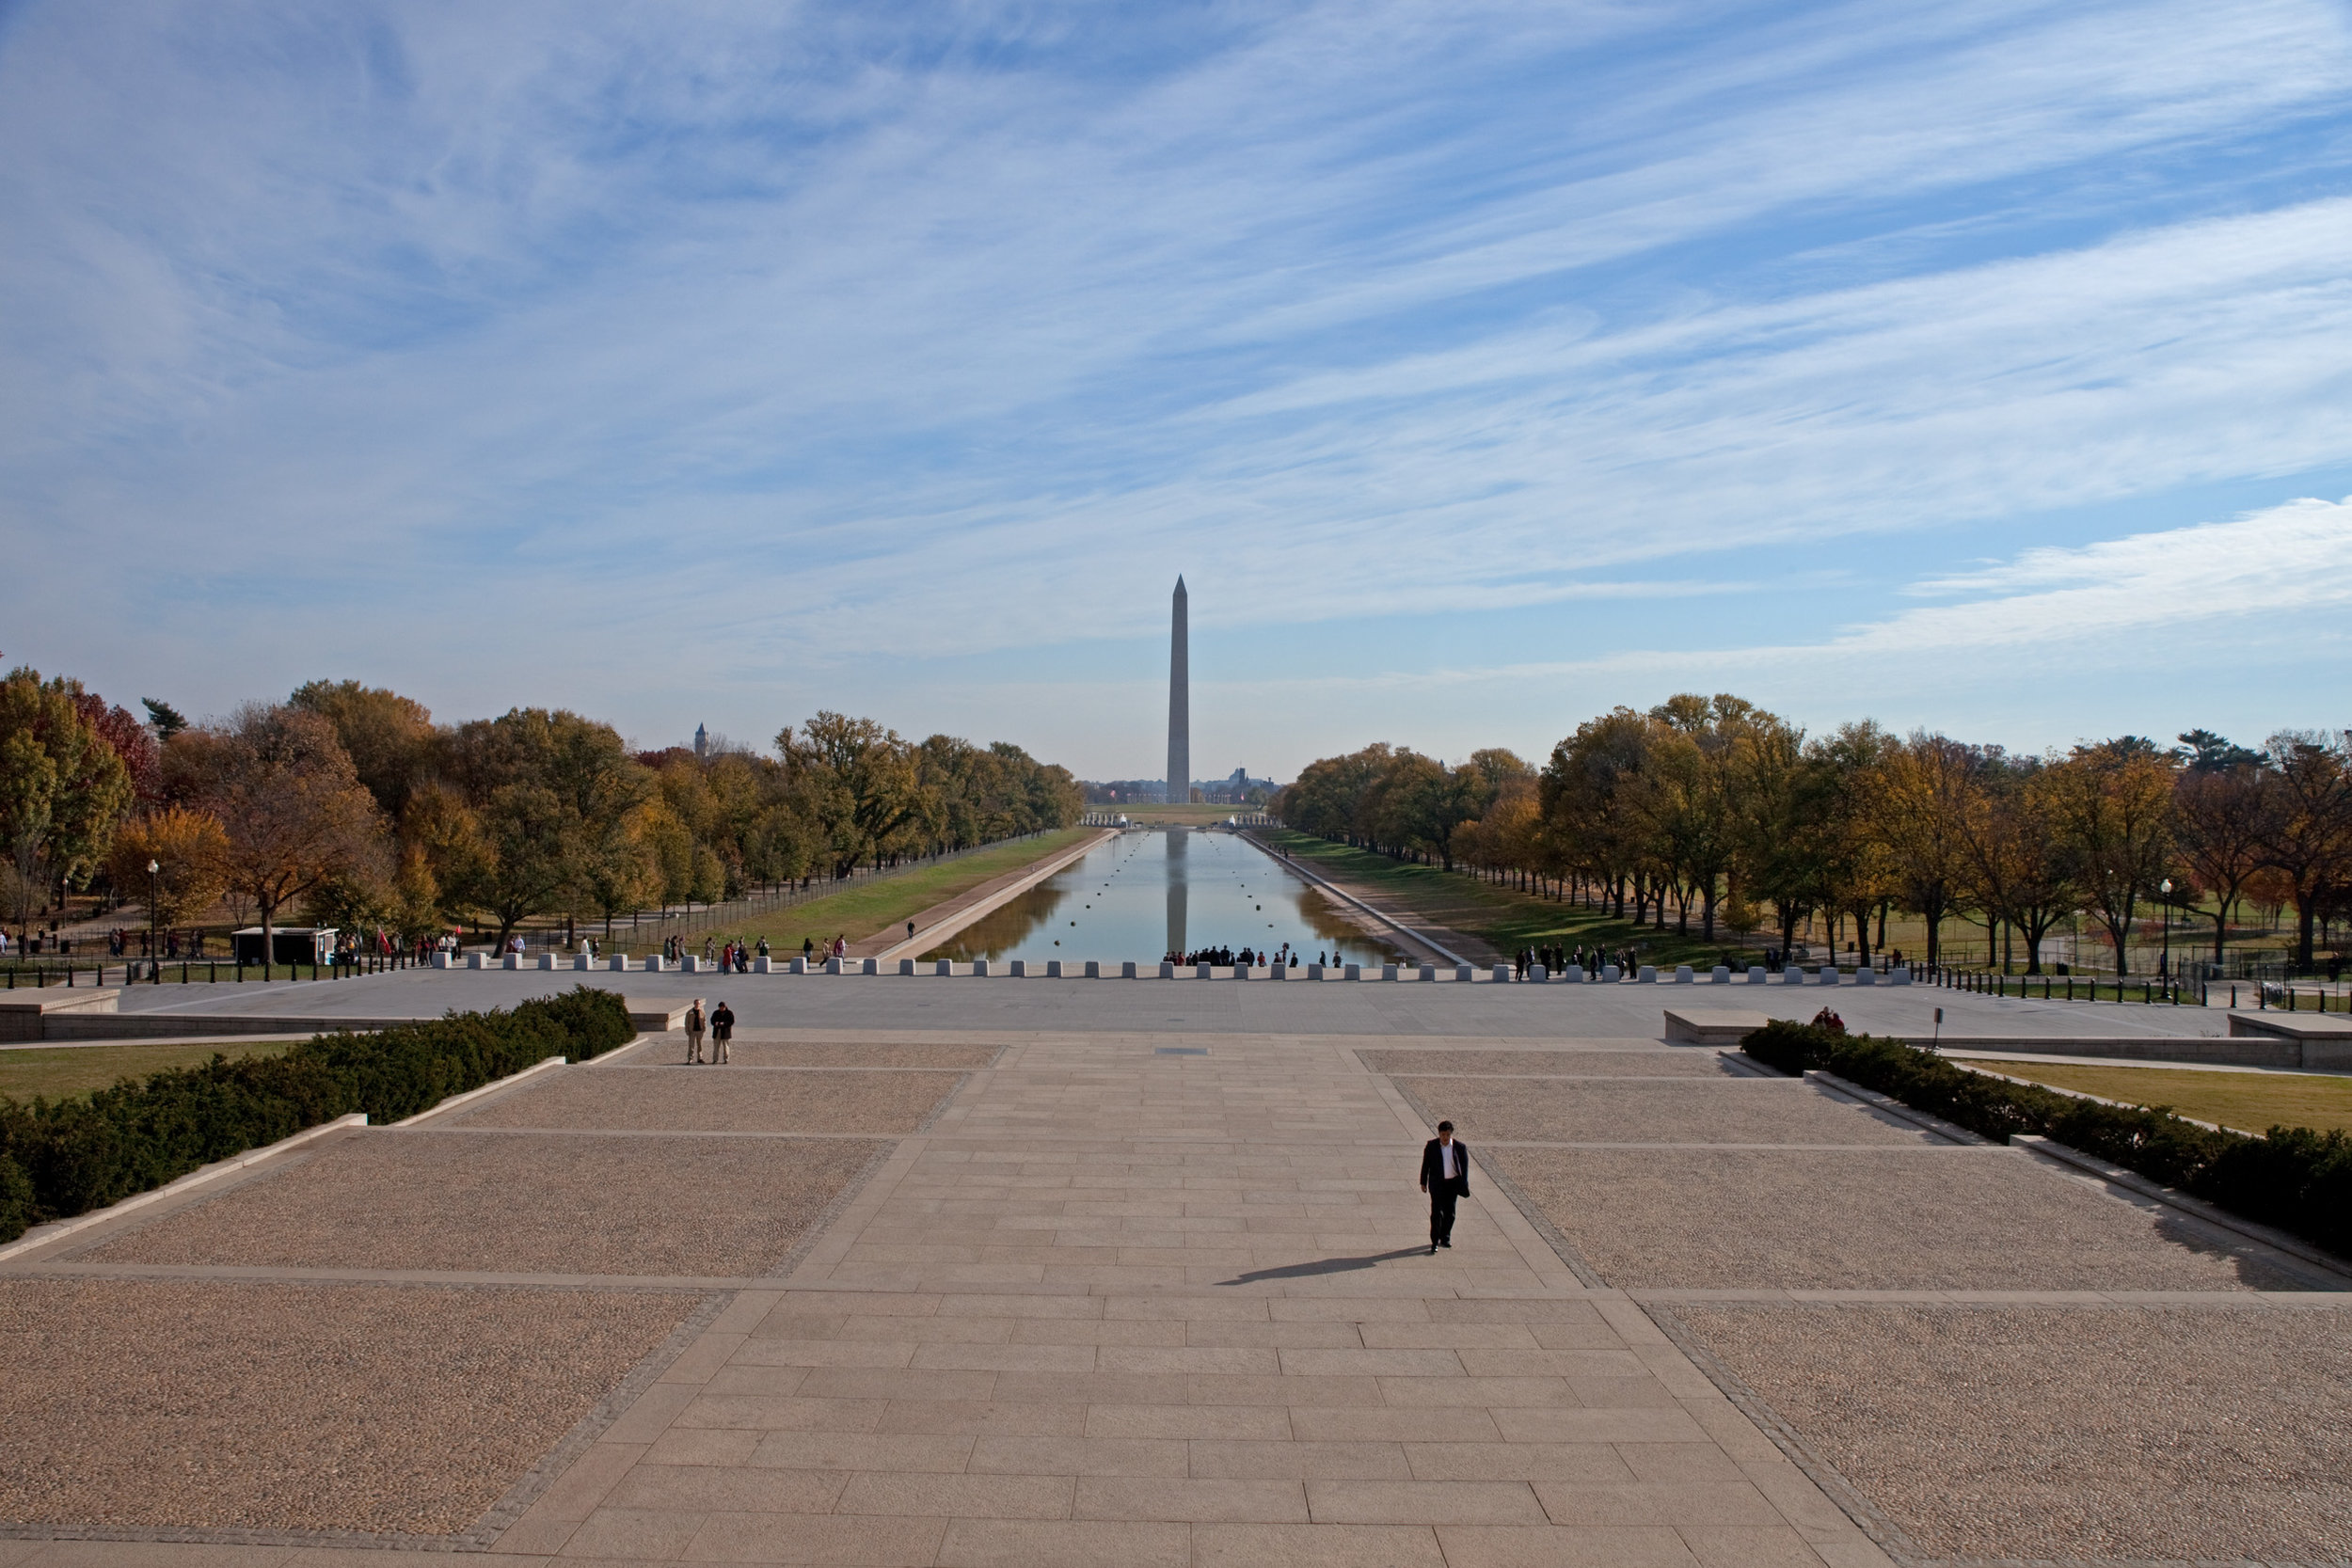 Fig 4: View of the Washington Mall